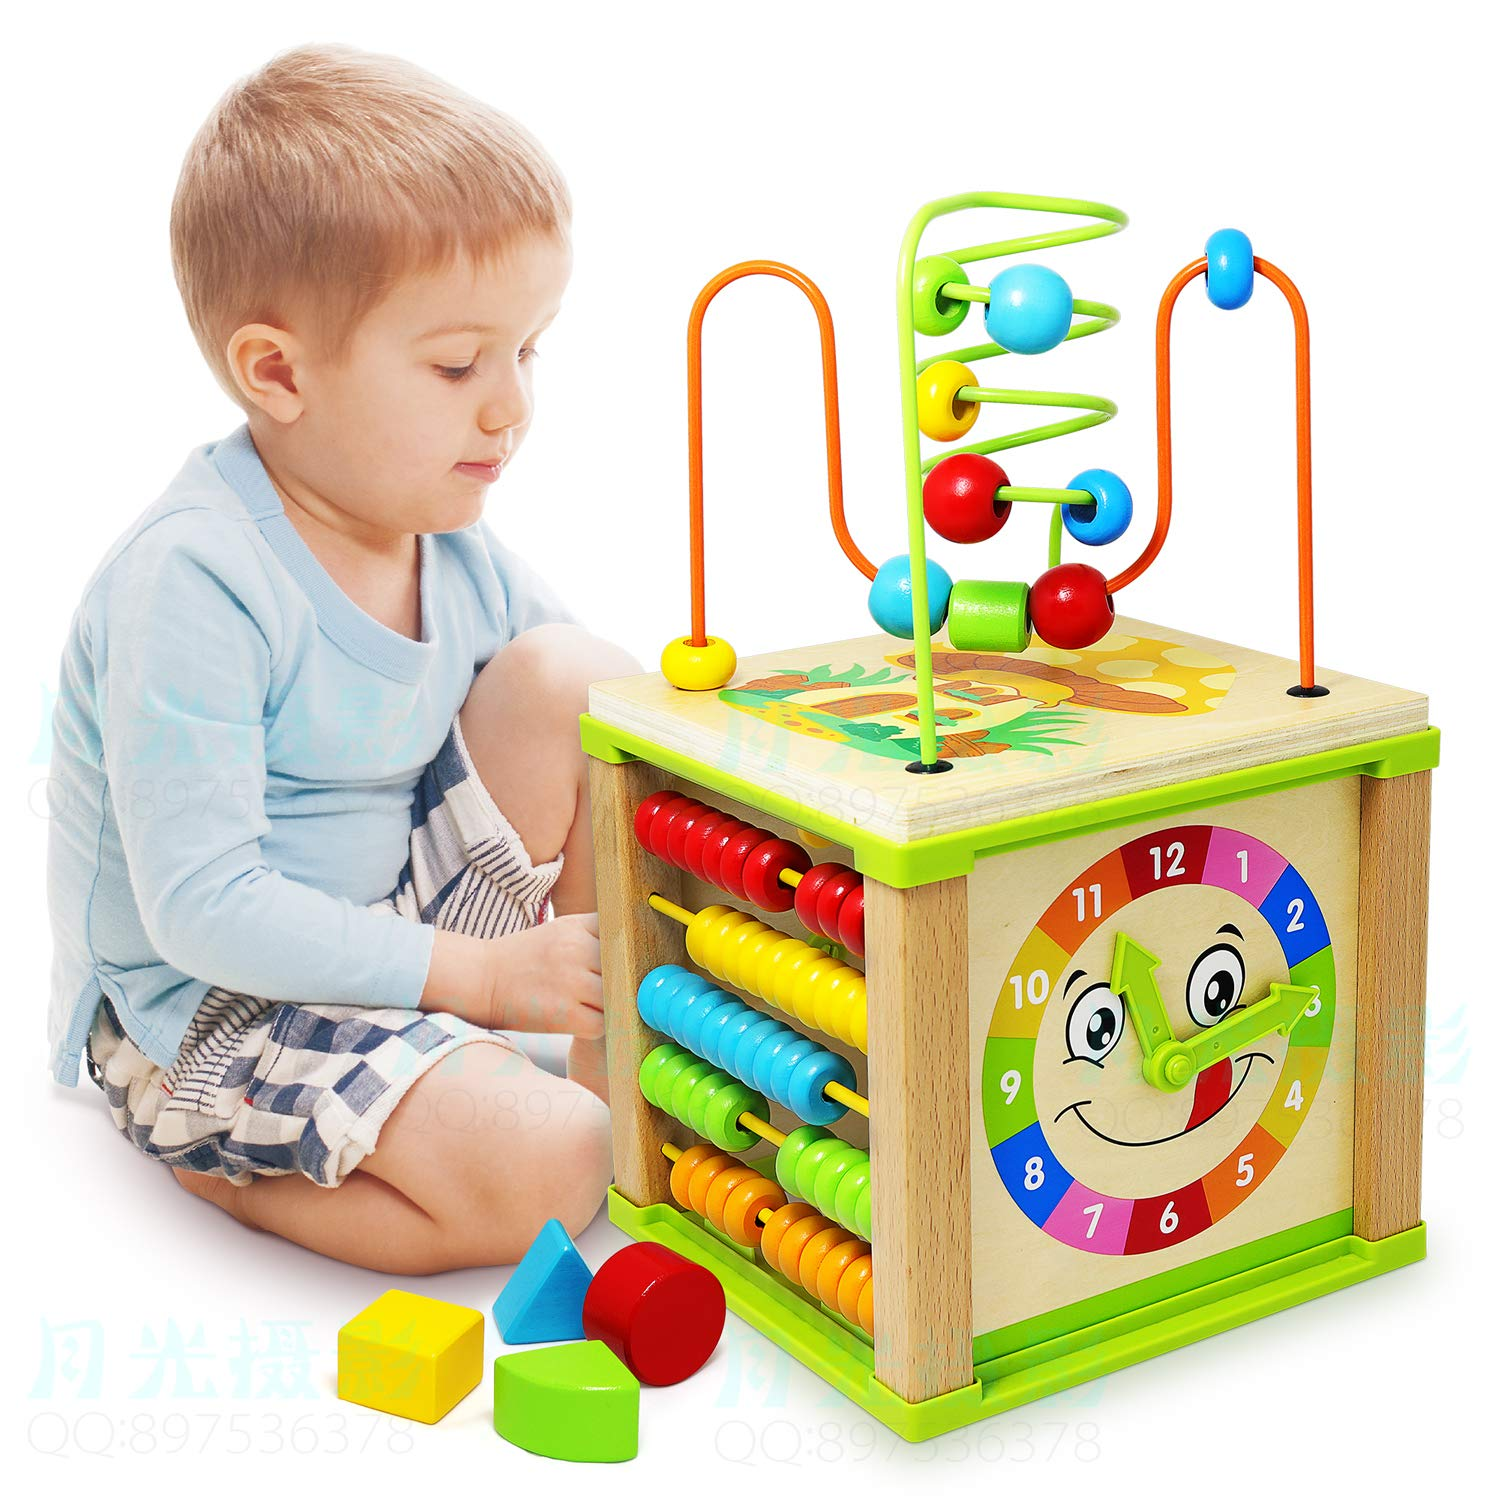 Ulmisfee Activity Cube Toys Baby Educational Wooden Bead Maze Shape Sorter For 1 2 3 Year Old Boy And Girl Toddlers Gift